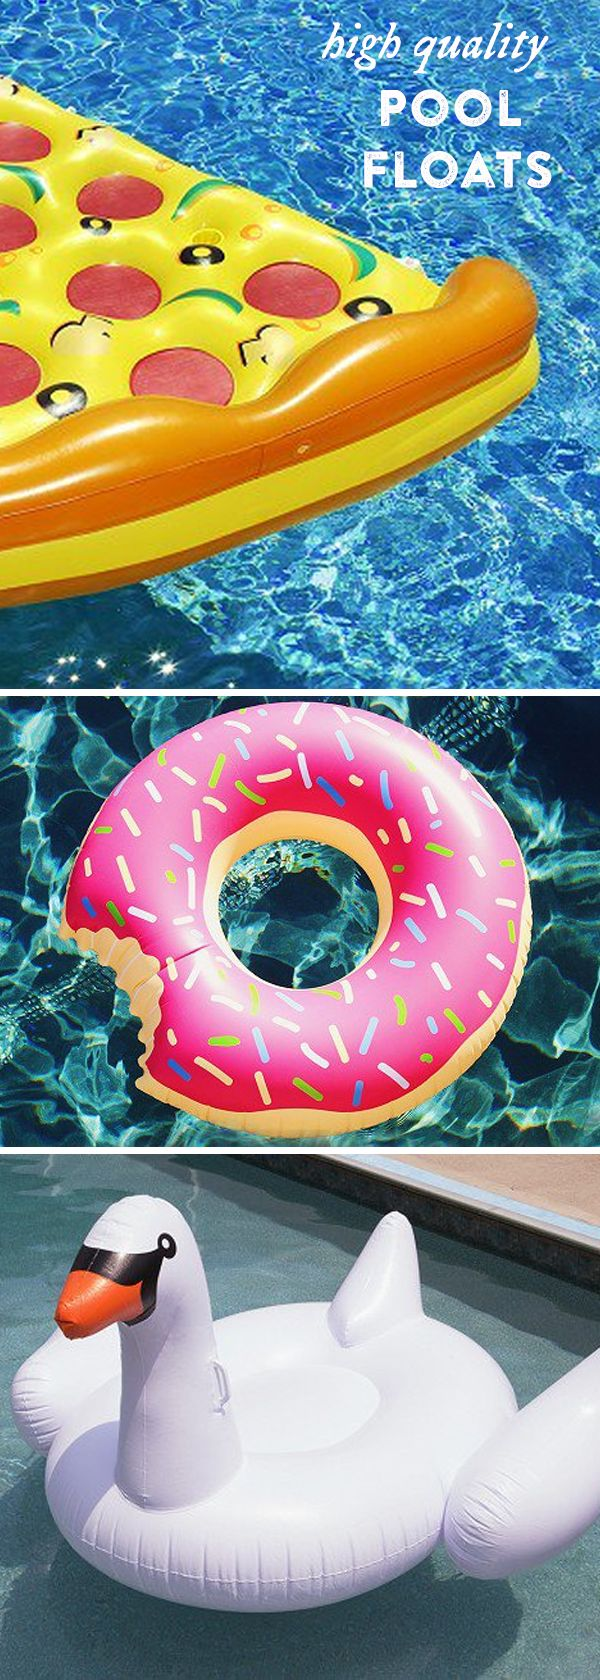 These fun pool floats are ready to party like a celeb. The quirky designs are quality tested and made with extra thick material—so your pizza will stay afloat.